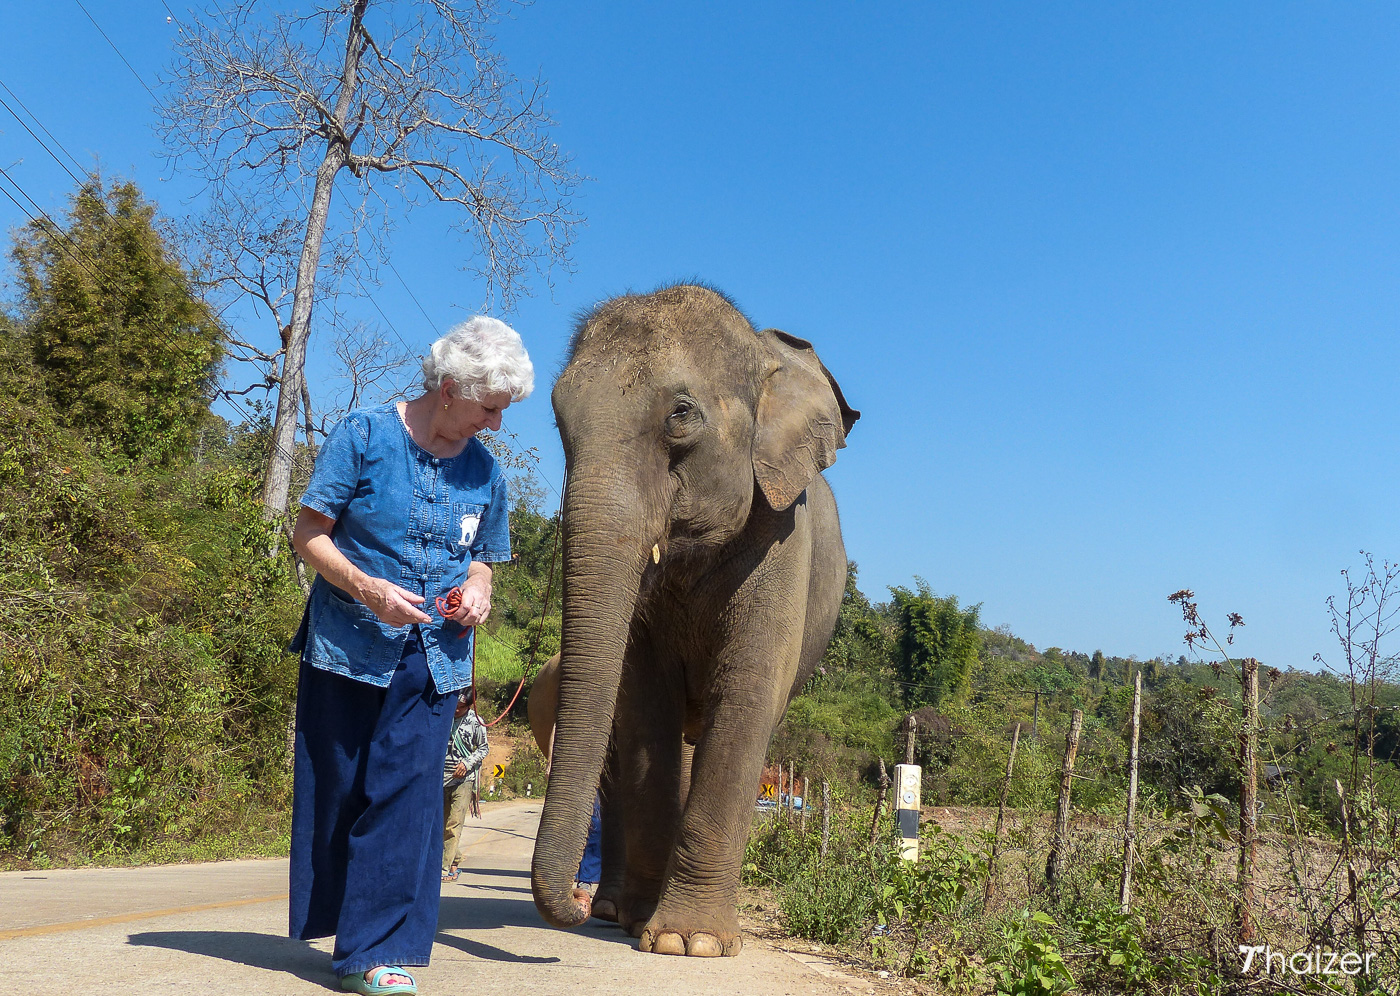 walking with elephants and no riding in Chiang Mai